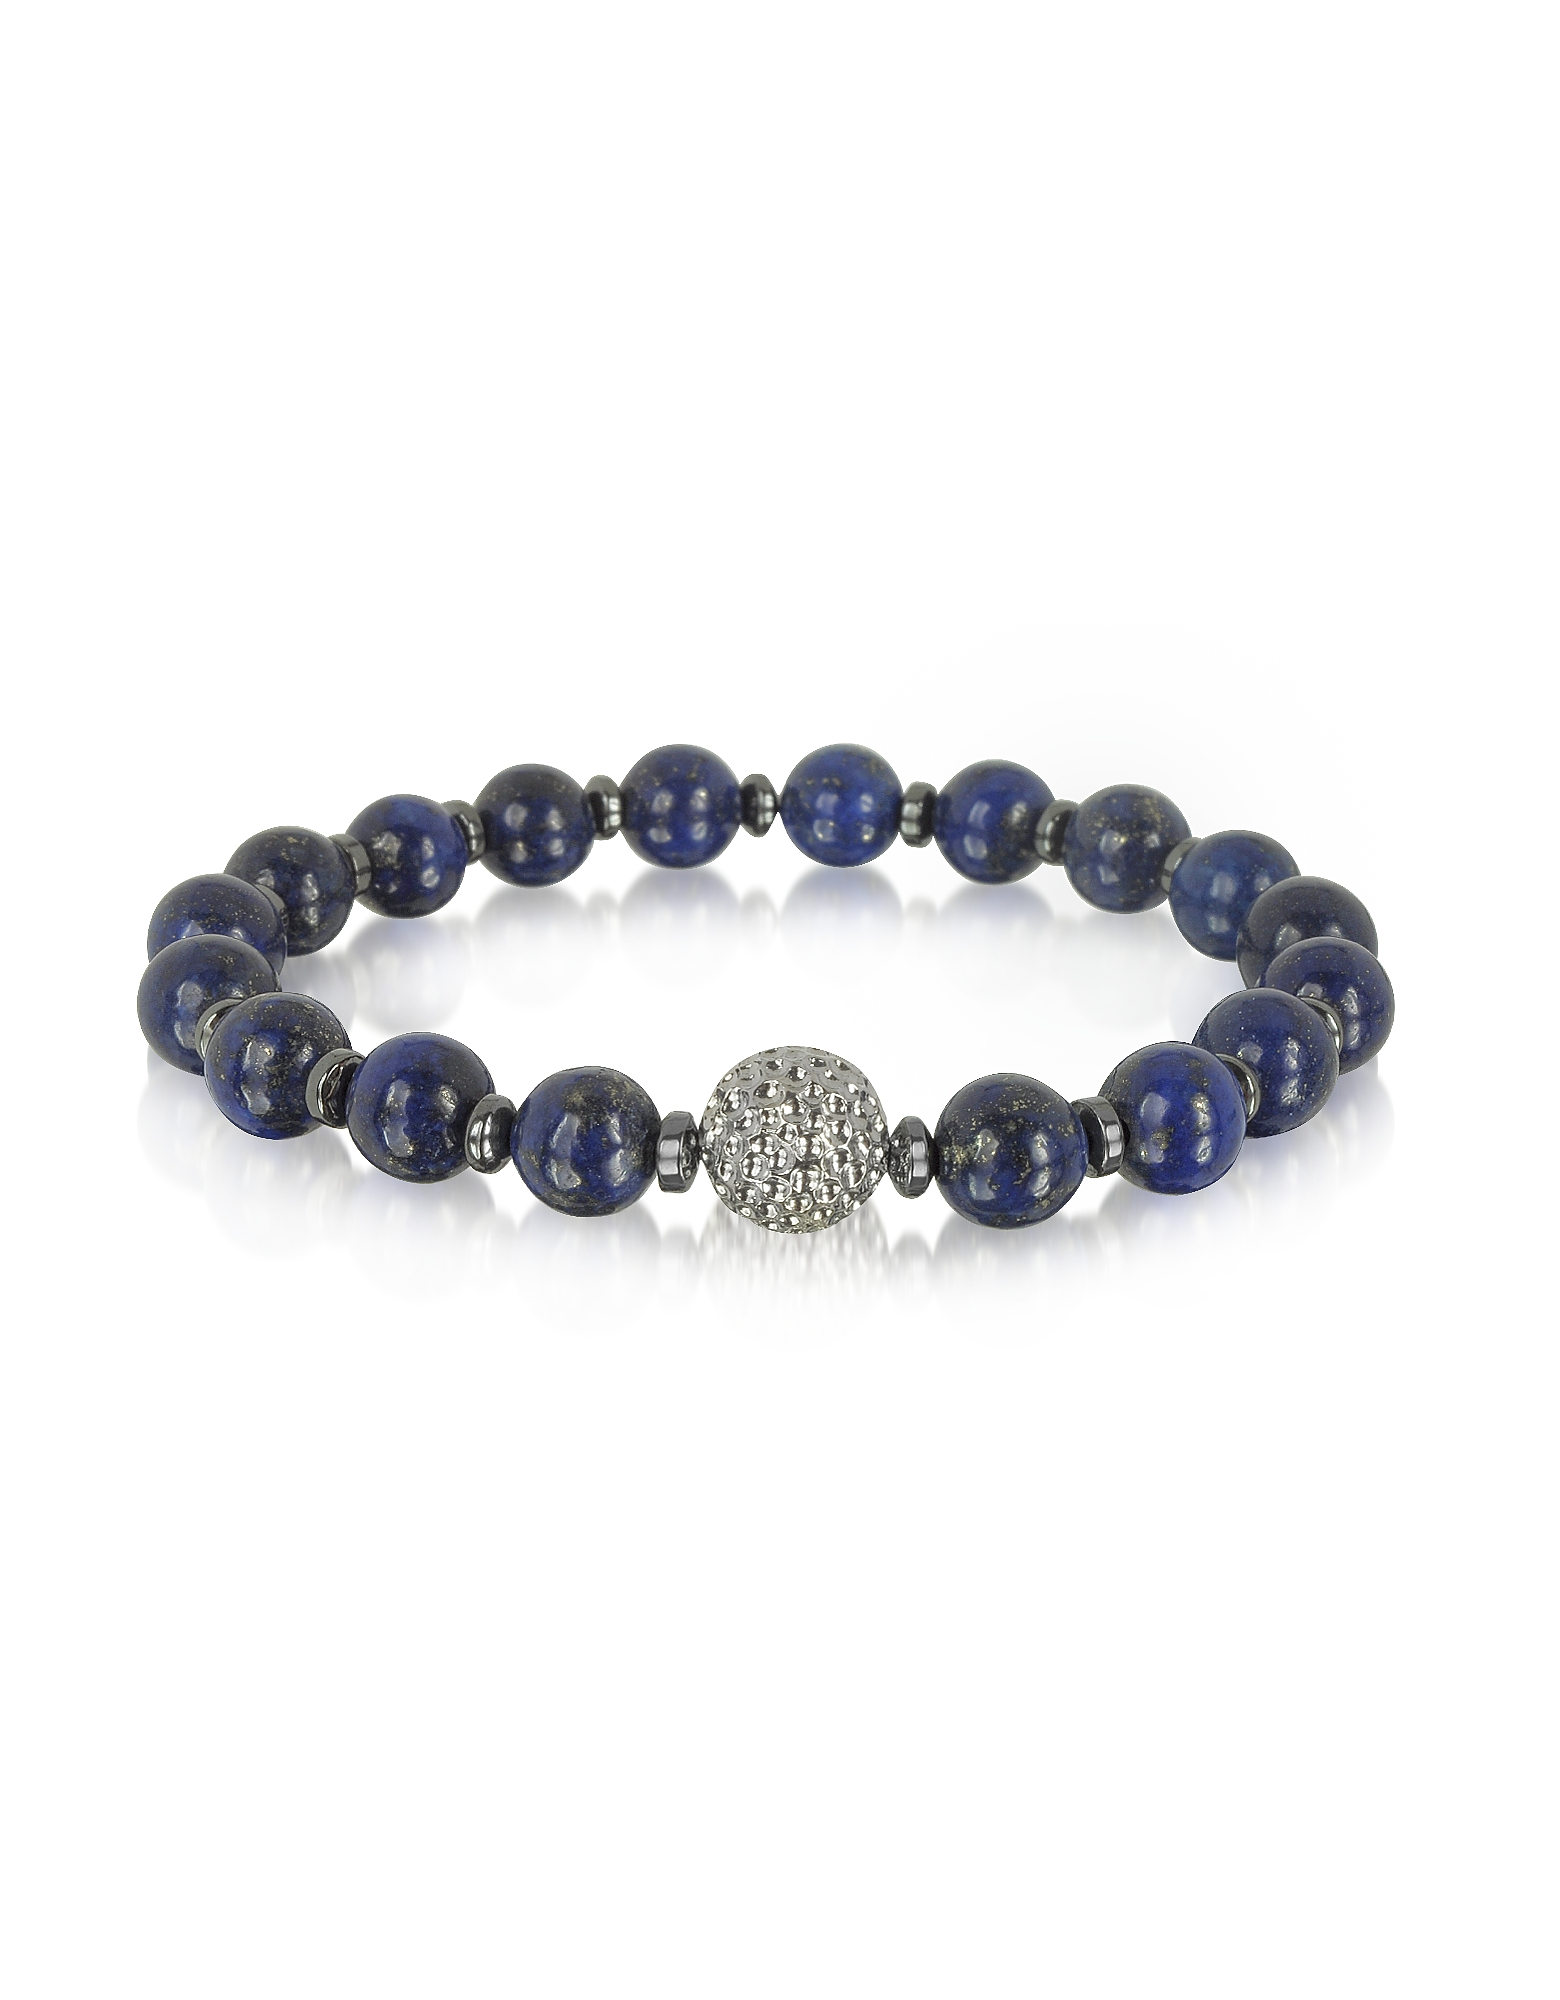 Image of Blackbourne Designer Men's Bracelets, Lapis Lazuli Small Stone Men's Bracelet w/Brass Golf Ball